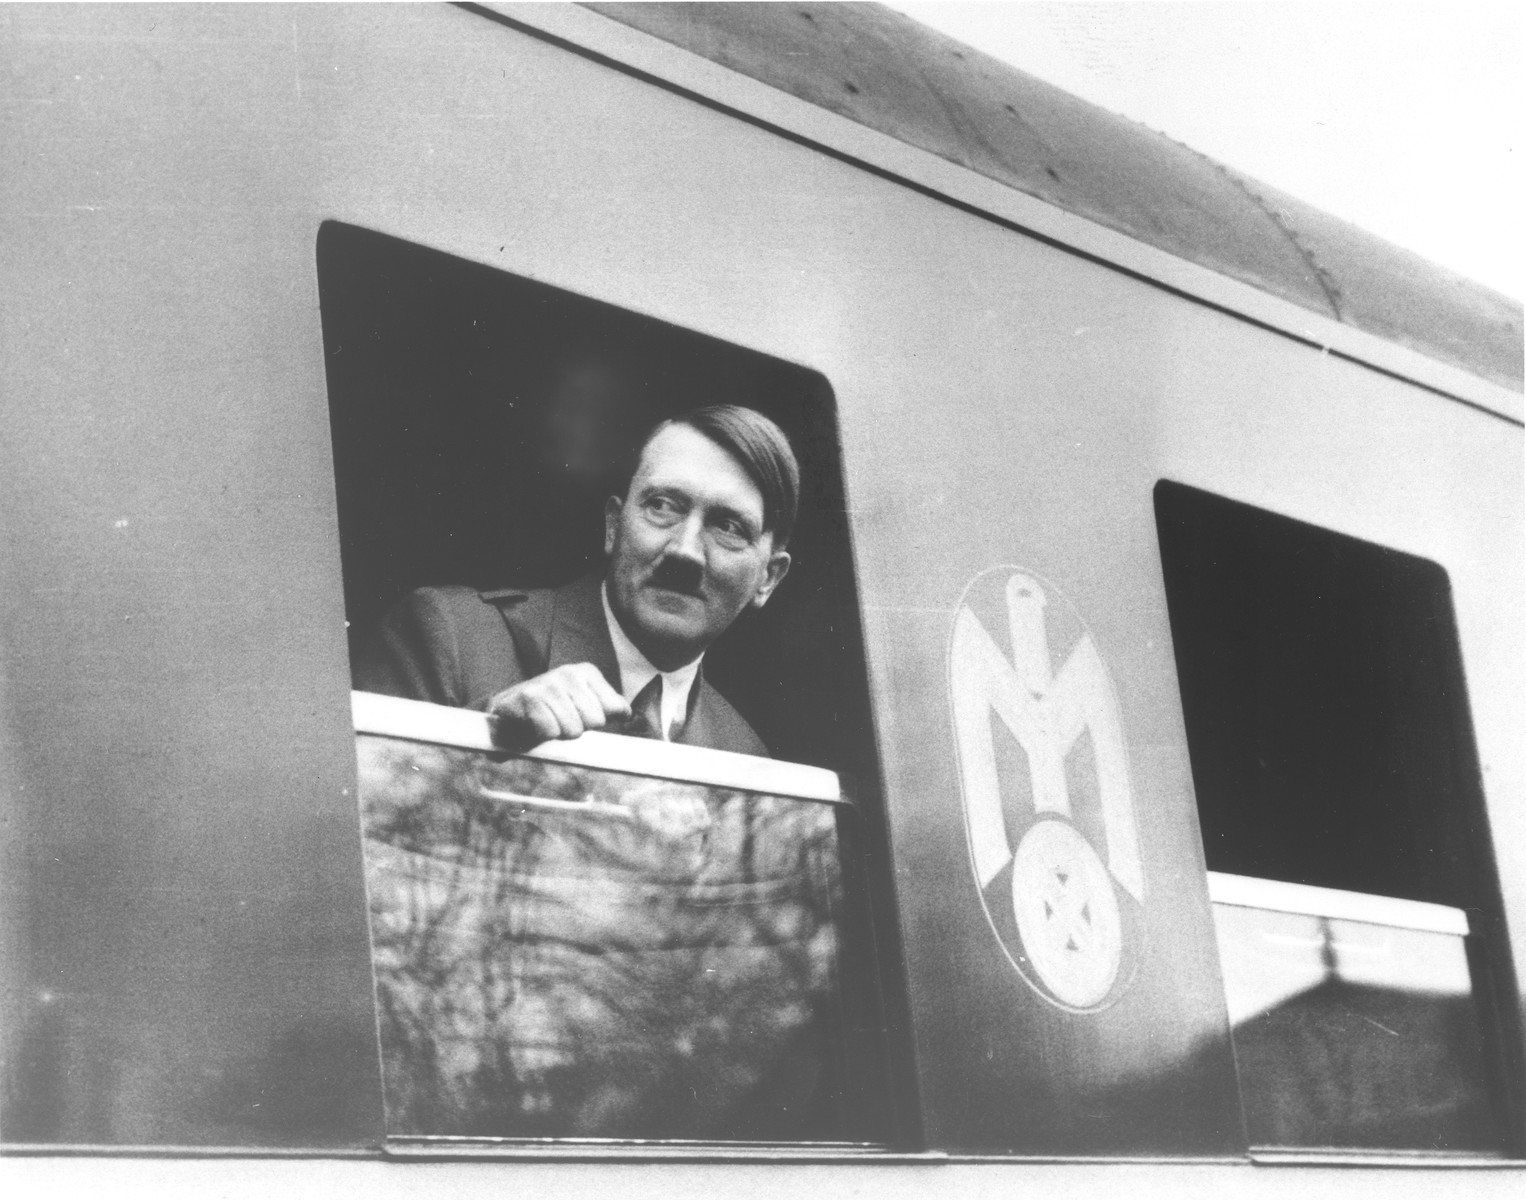 Adolf Hitler looks out the window of a train.